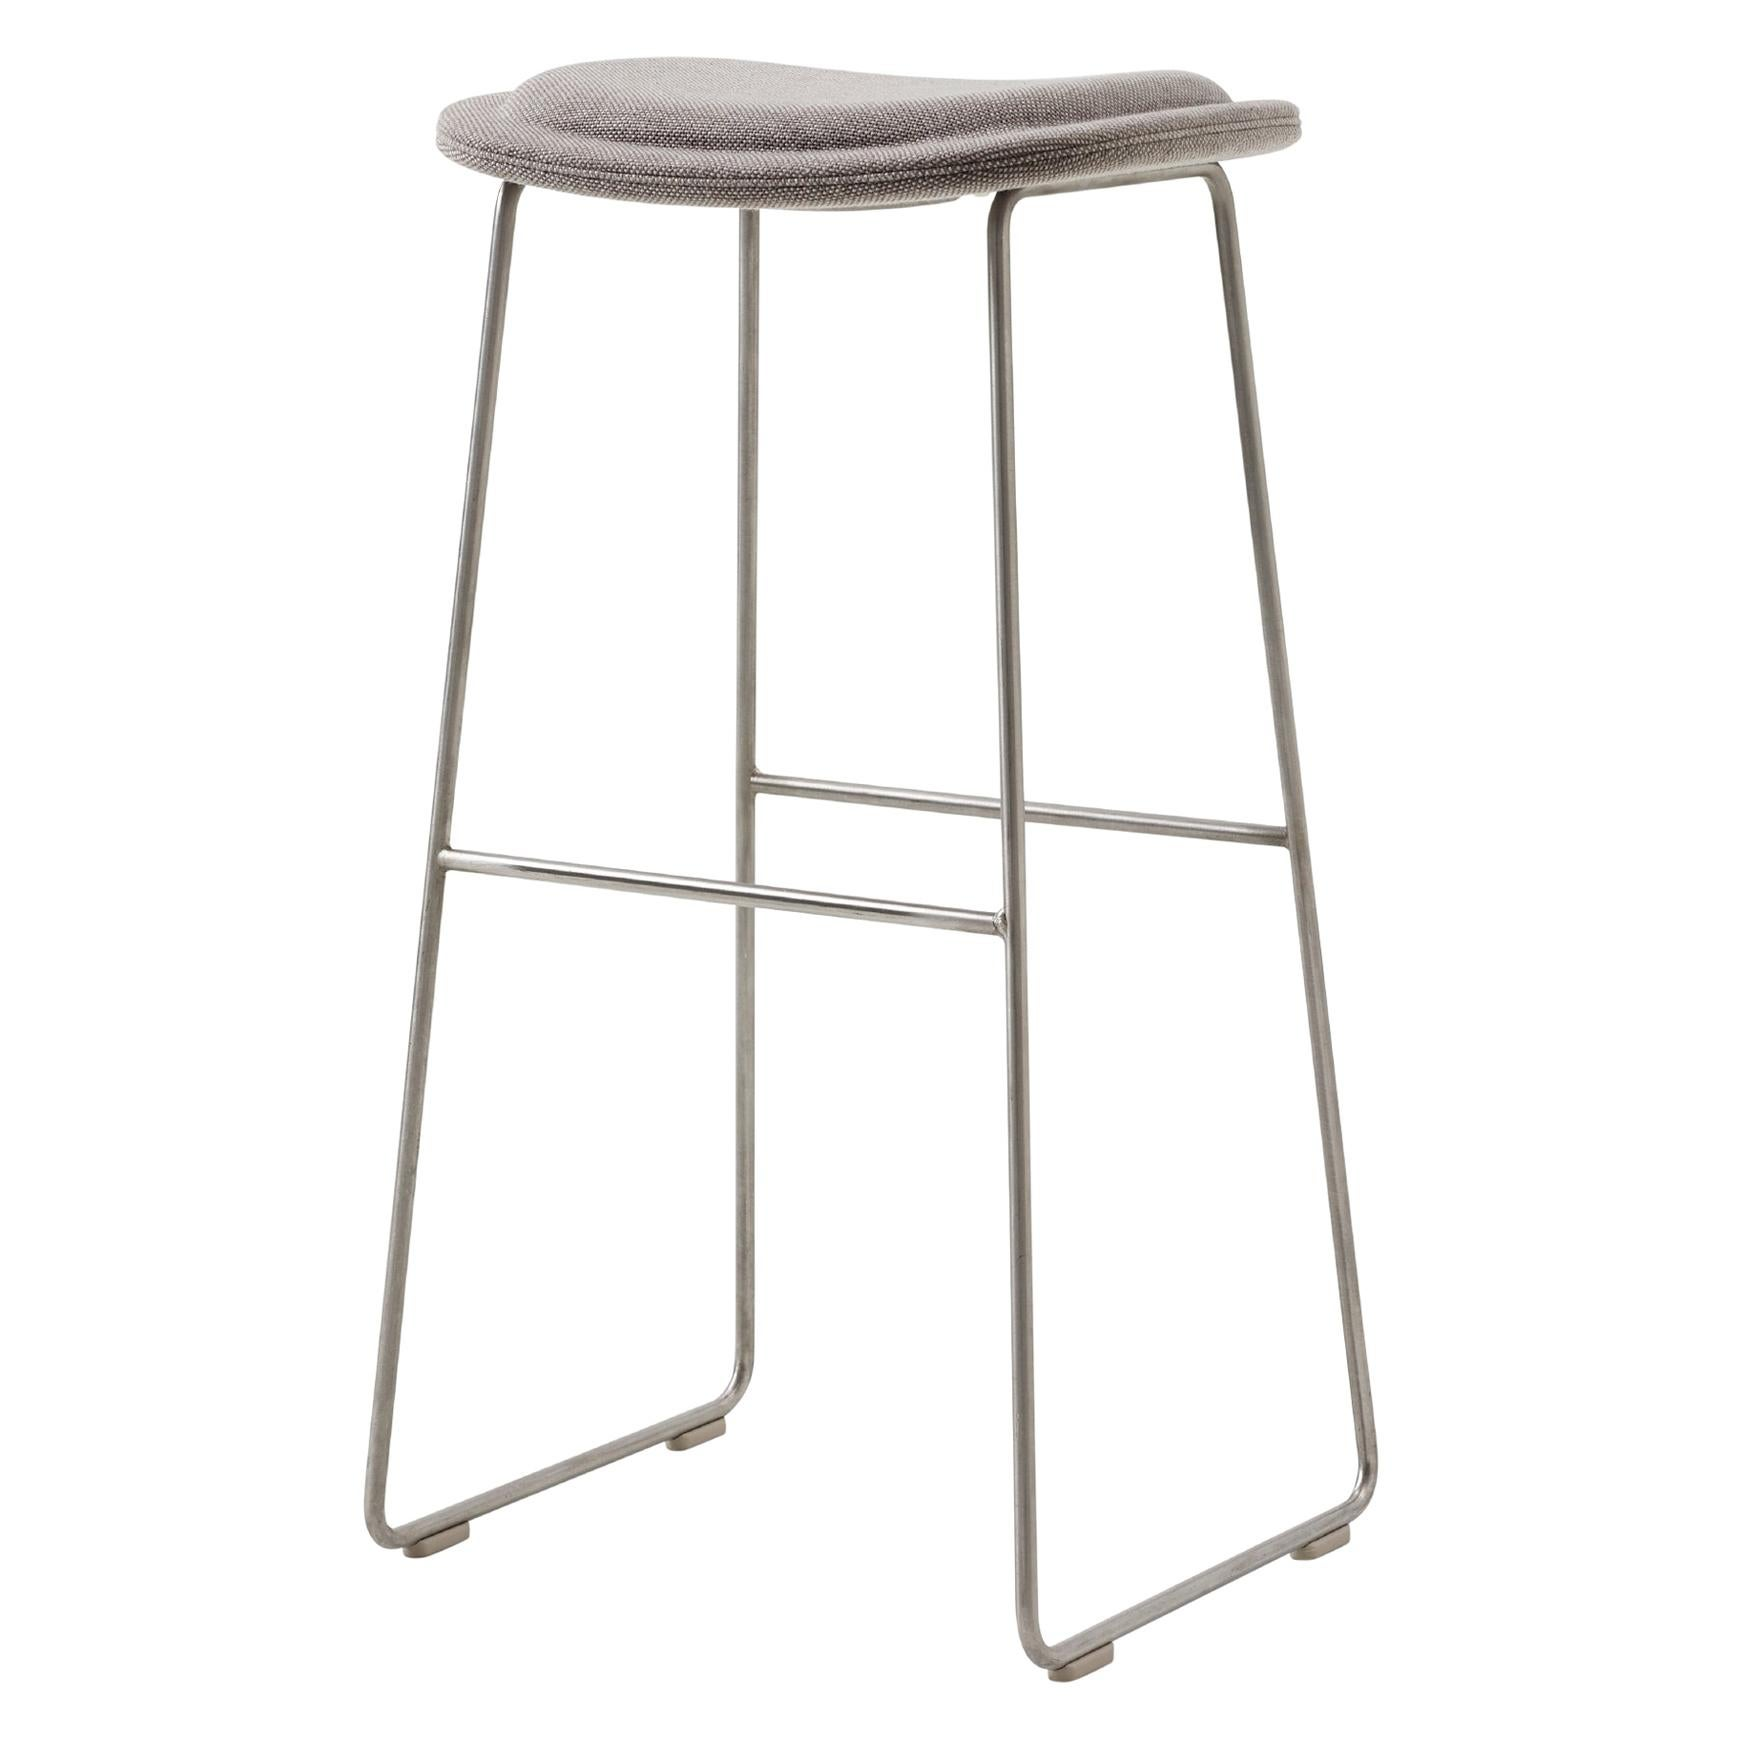 Jasper Morrison Small Hi Pad Stool in Fabric or Leather Upholstery by Cappellini